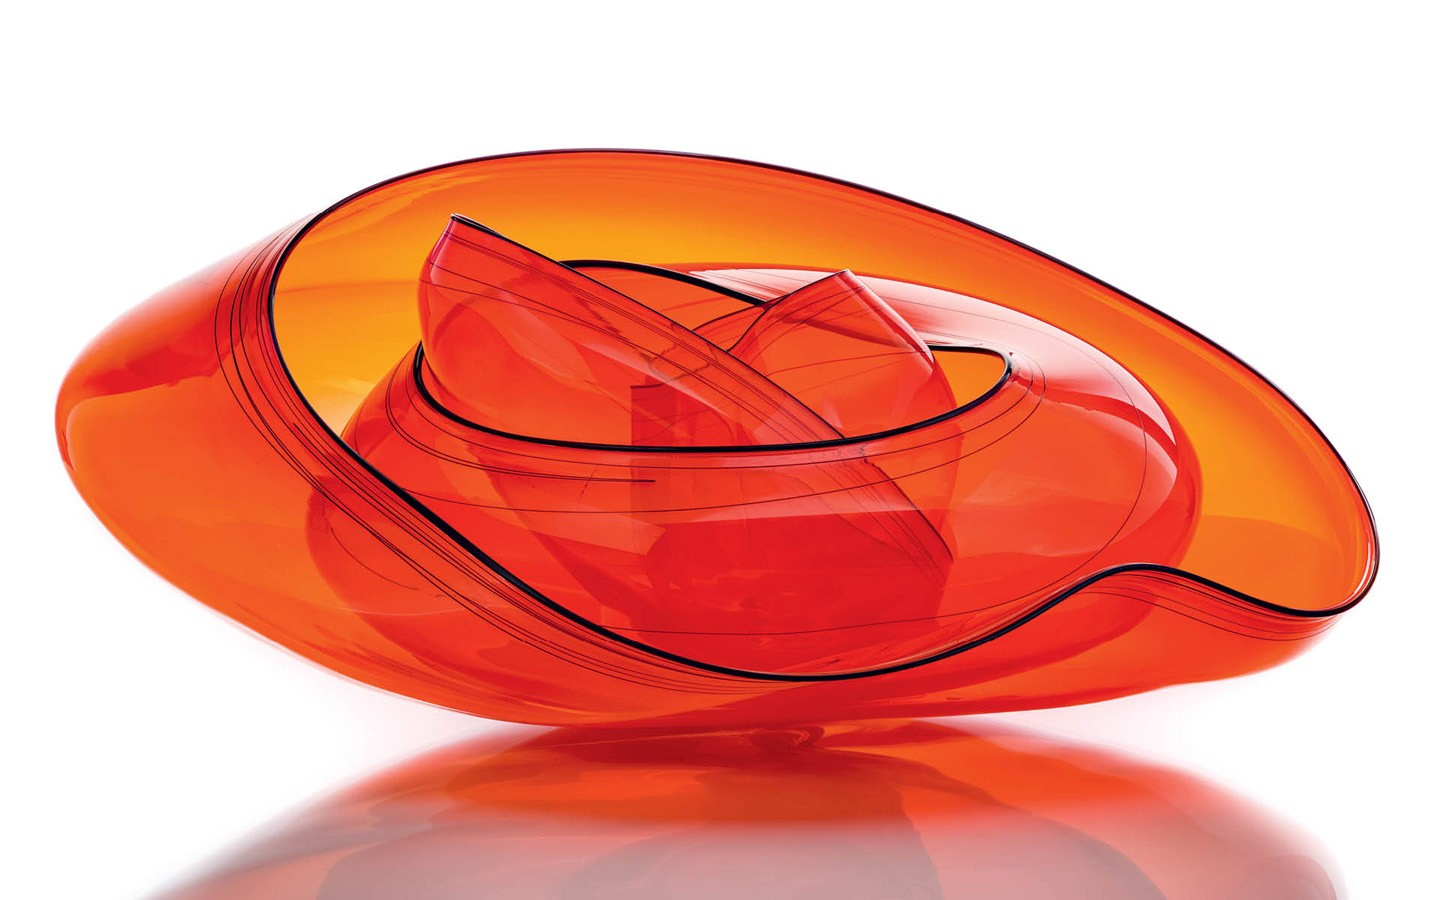 Chihuly clipart #19, Download drawings